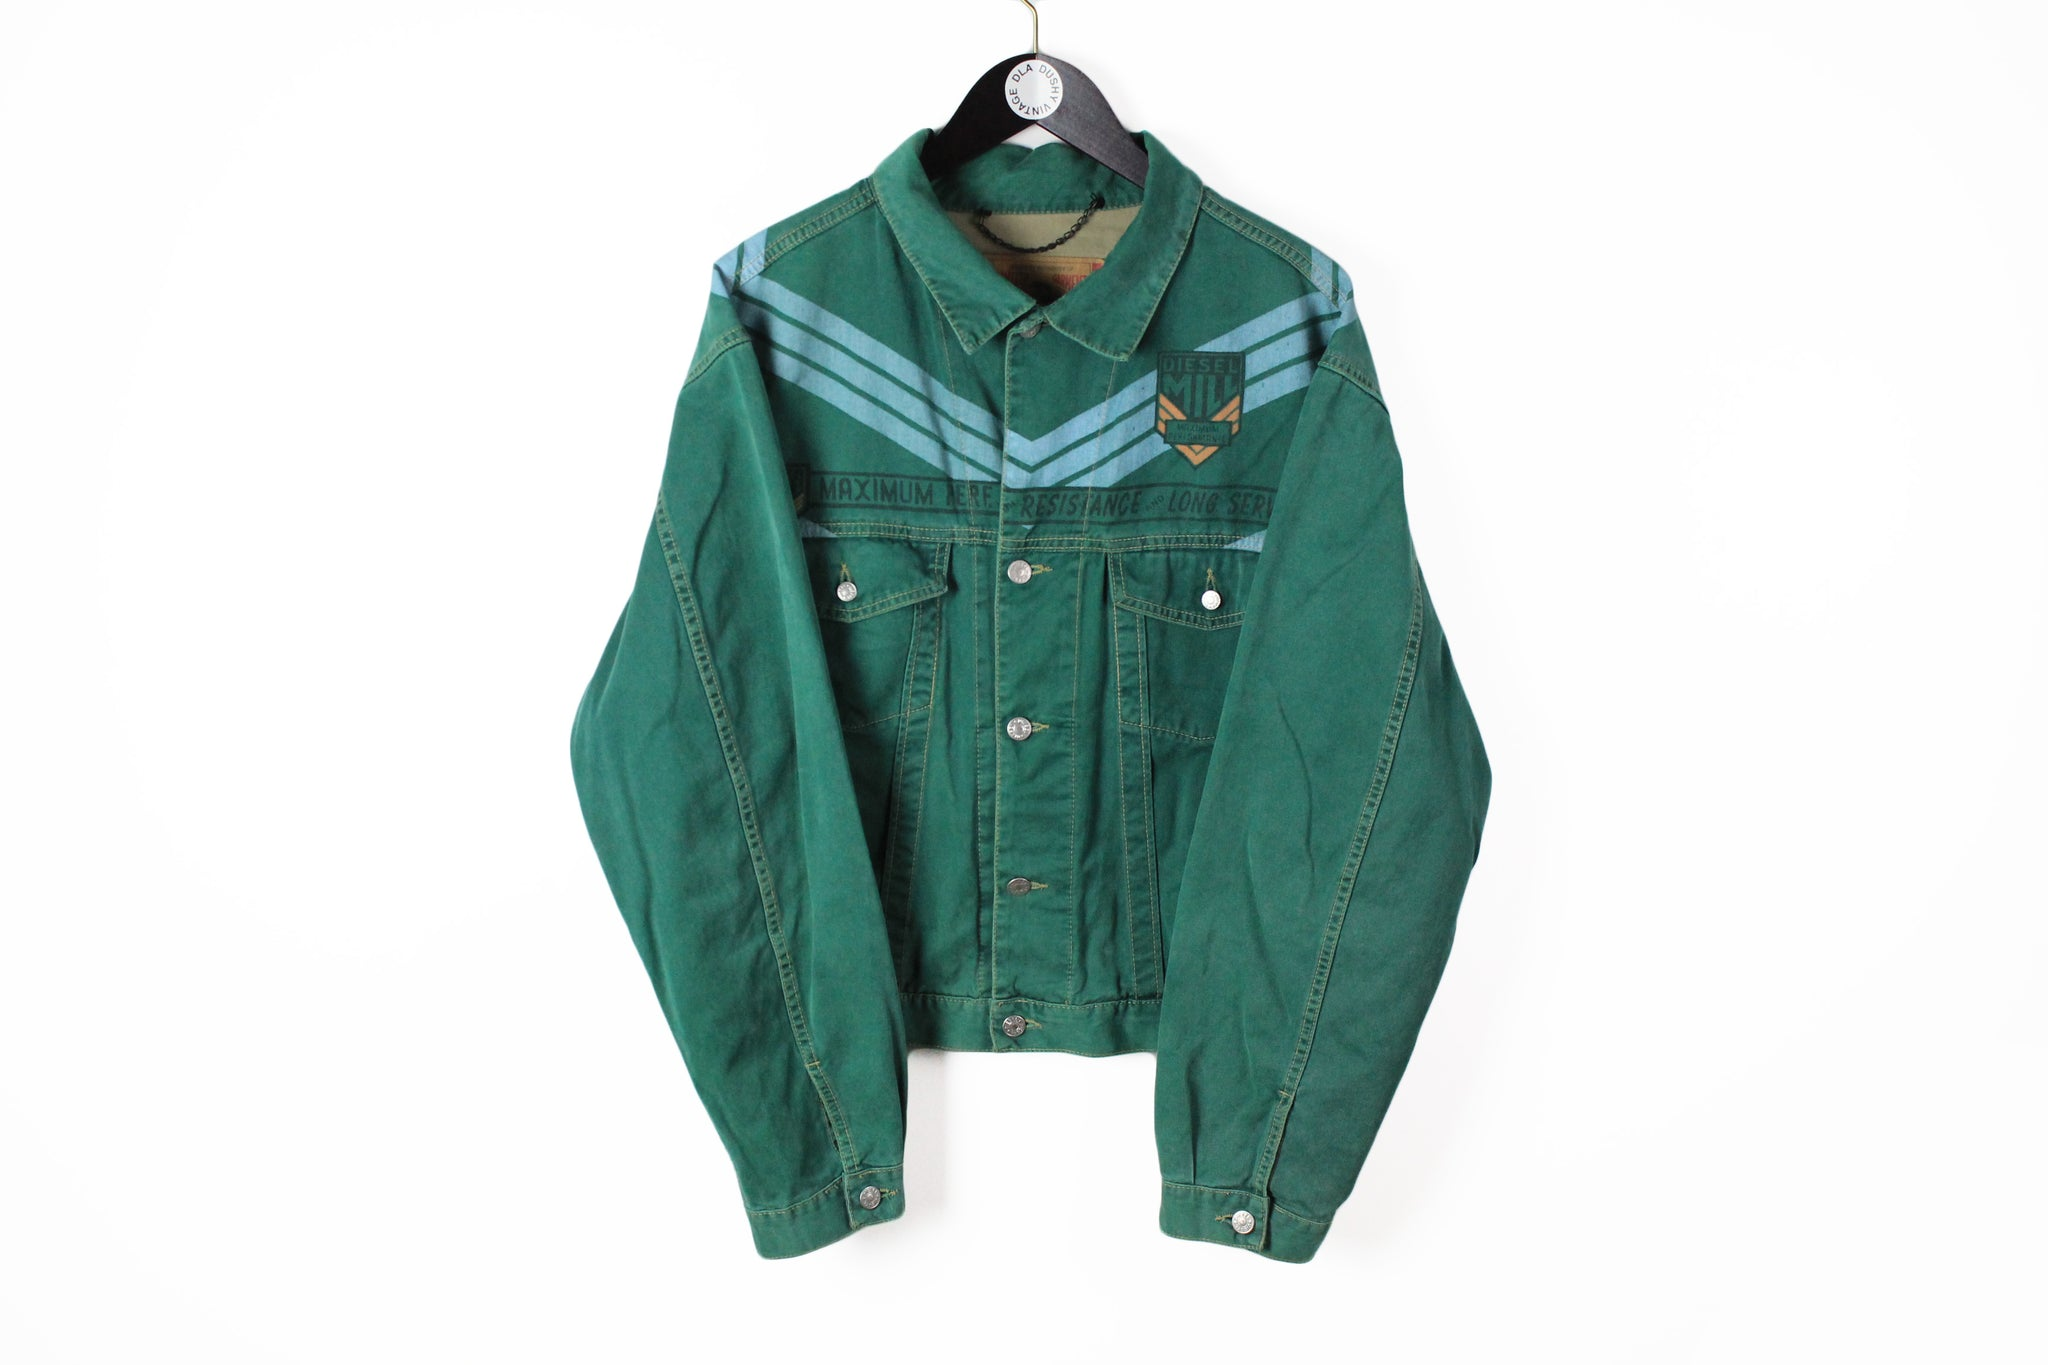 Vintage Diesel Denim Jacket Large green 90s military long sleeve classic style USA wear